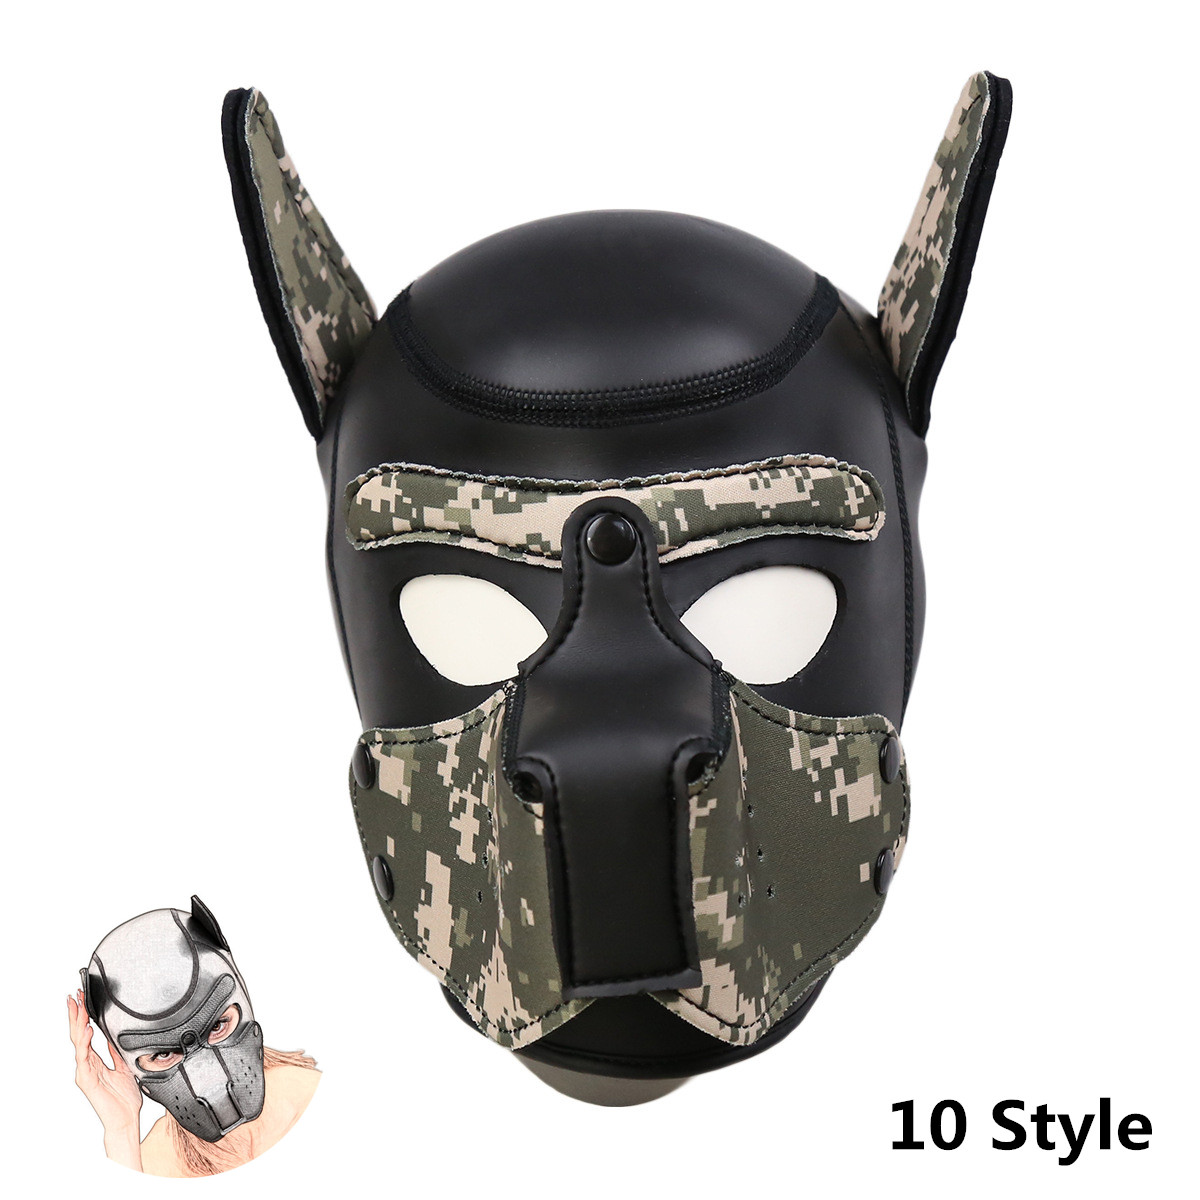 Slave Soft Padded Neoprene Dog Full Head Mask Hood For Bdsm Bondage Couples Flirting Adults Games Halloween Party,Unusual Goods